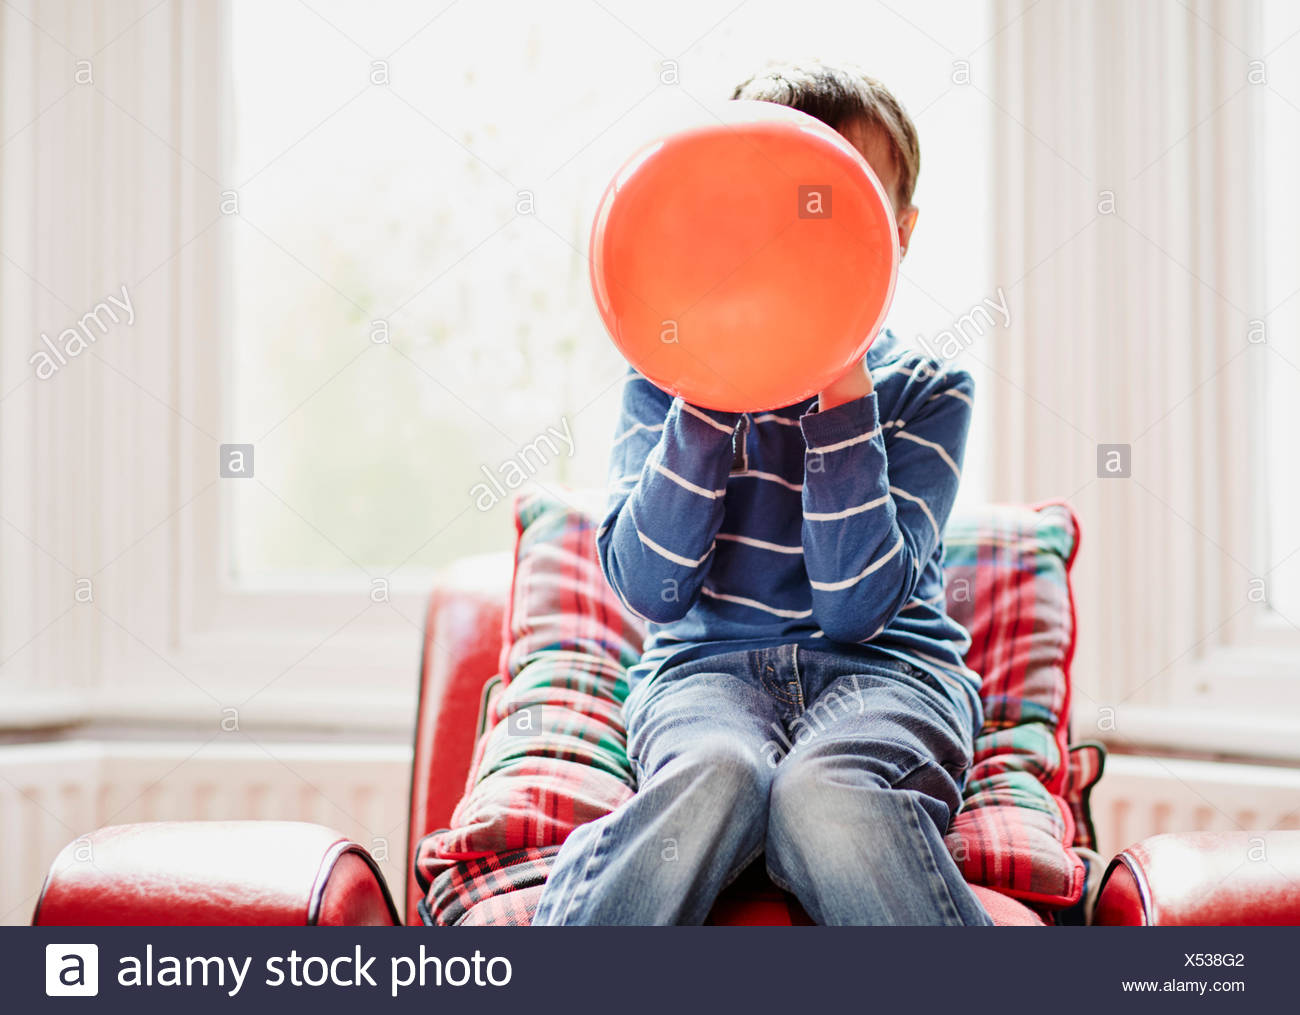 Young boy holding balloon in front of face - Stock Image